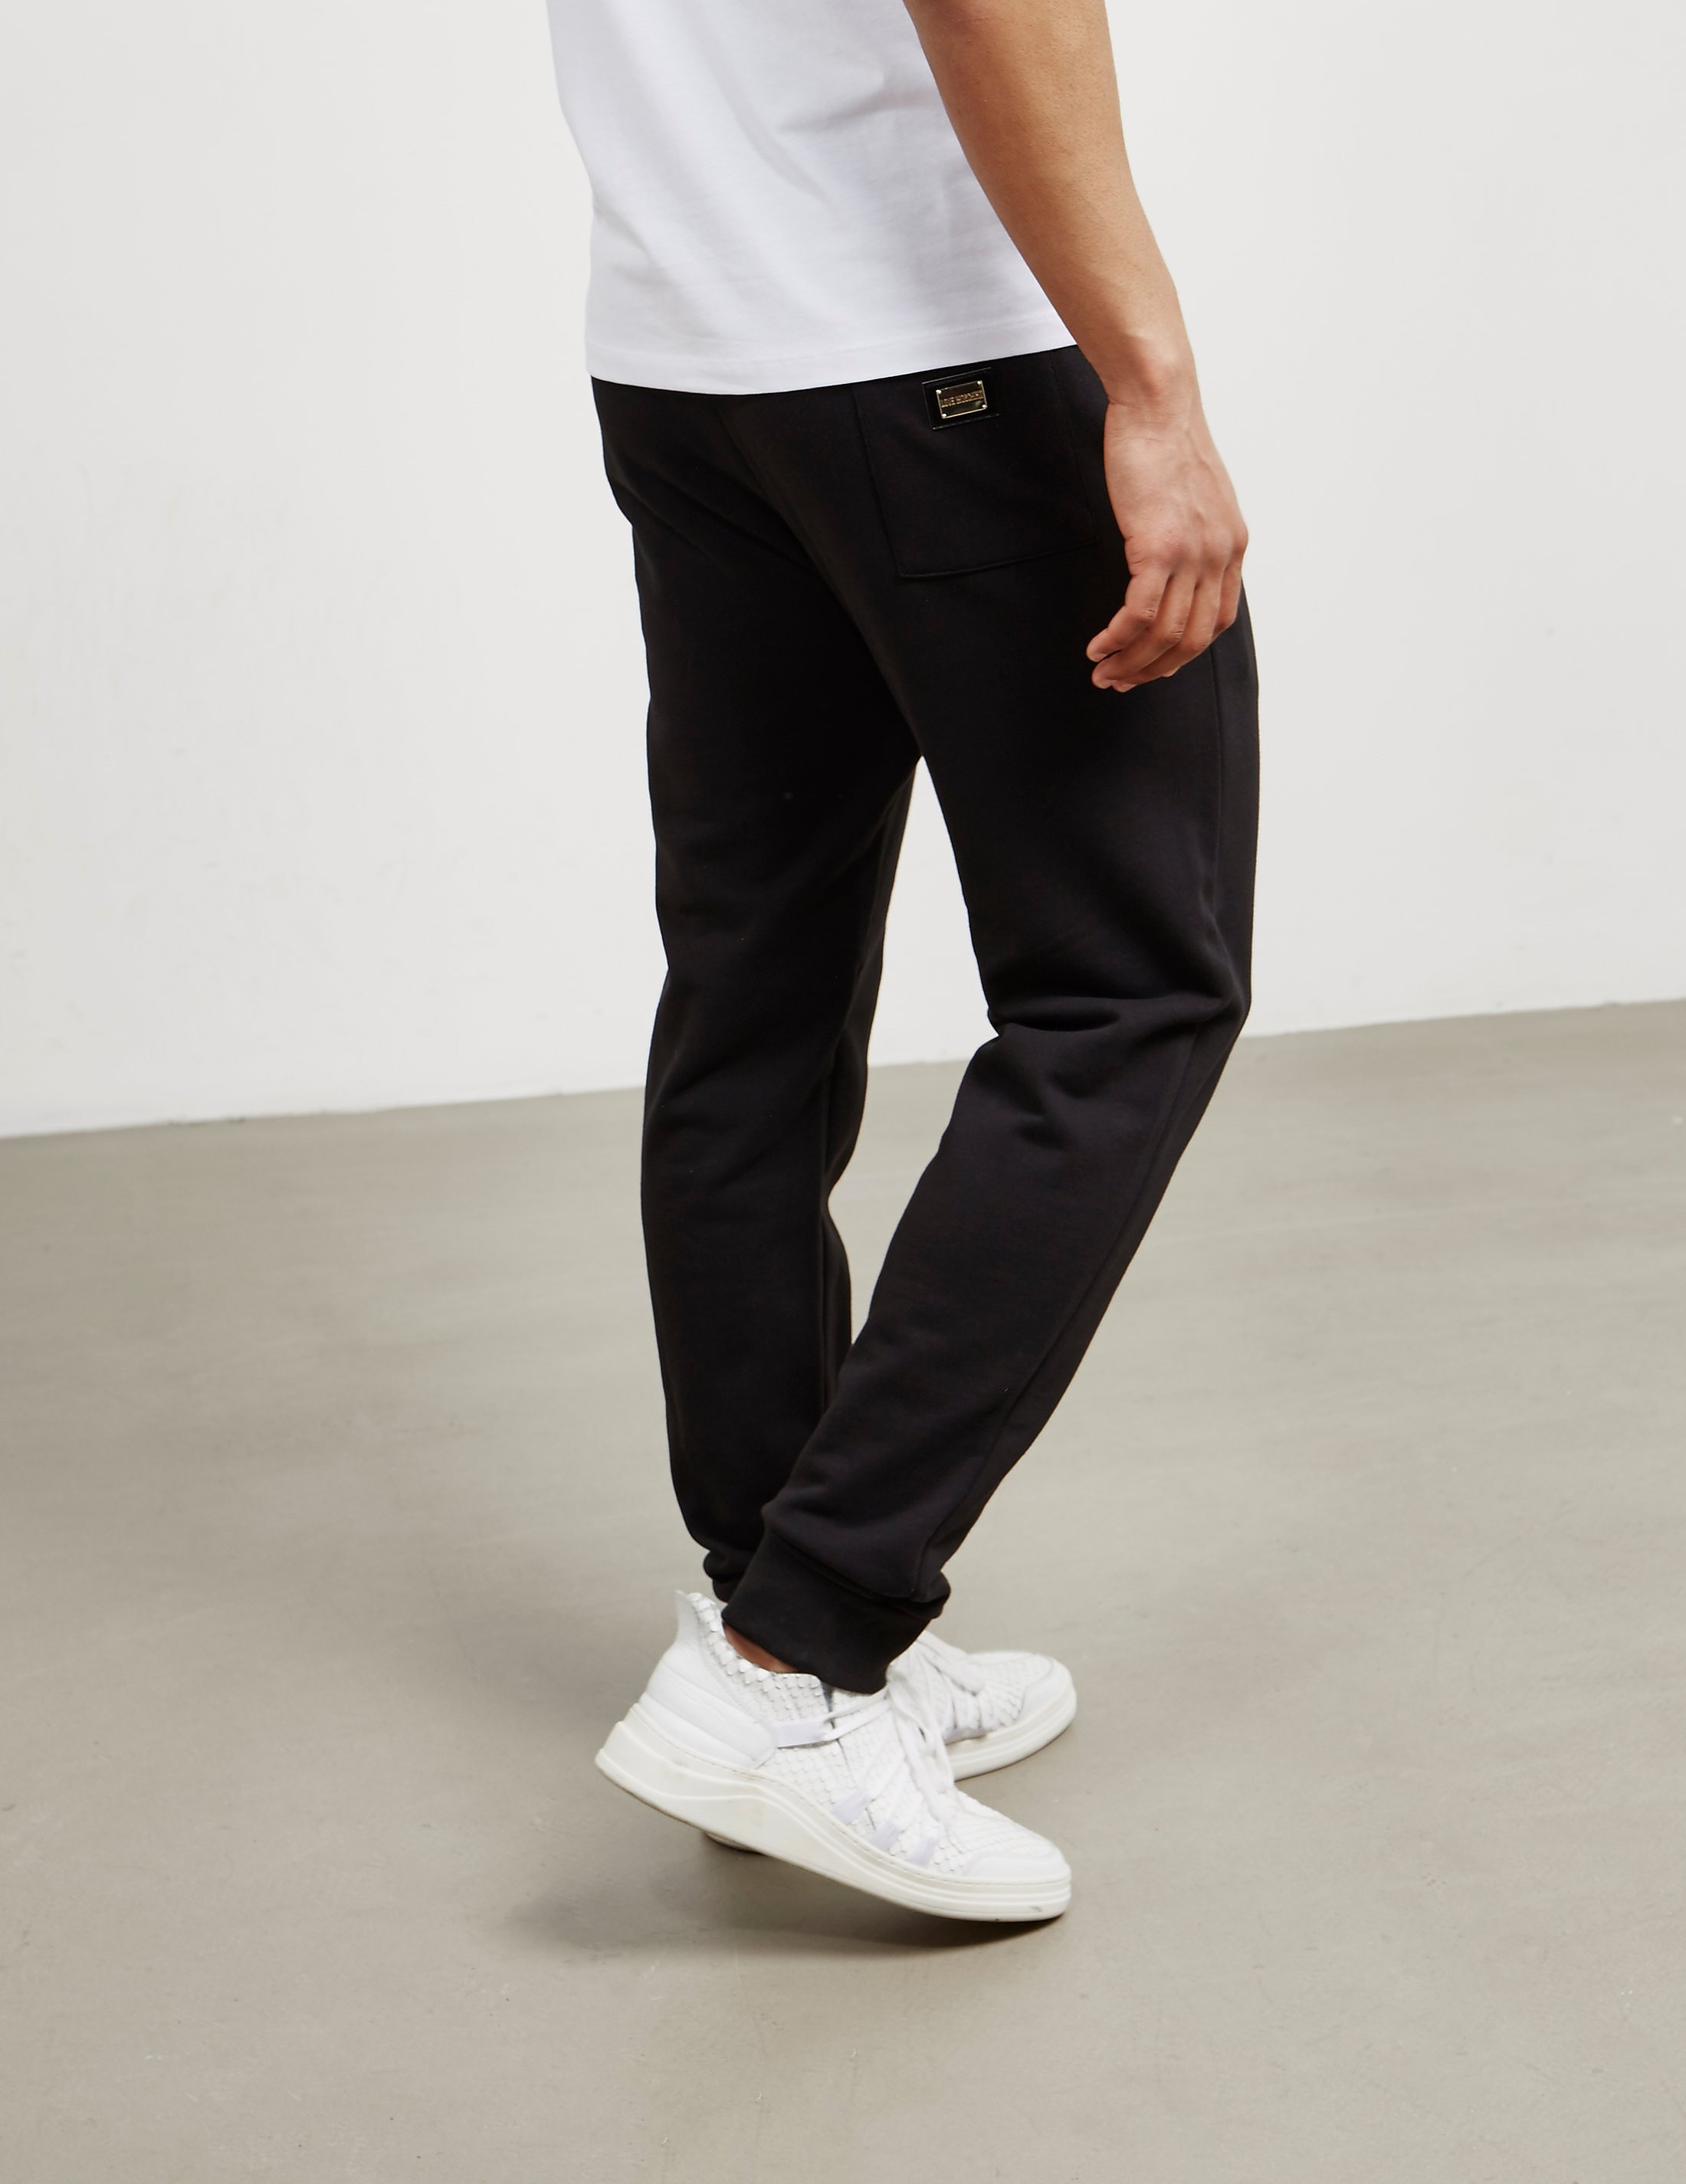 Love Moschino Gold Plaque Track Pants